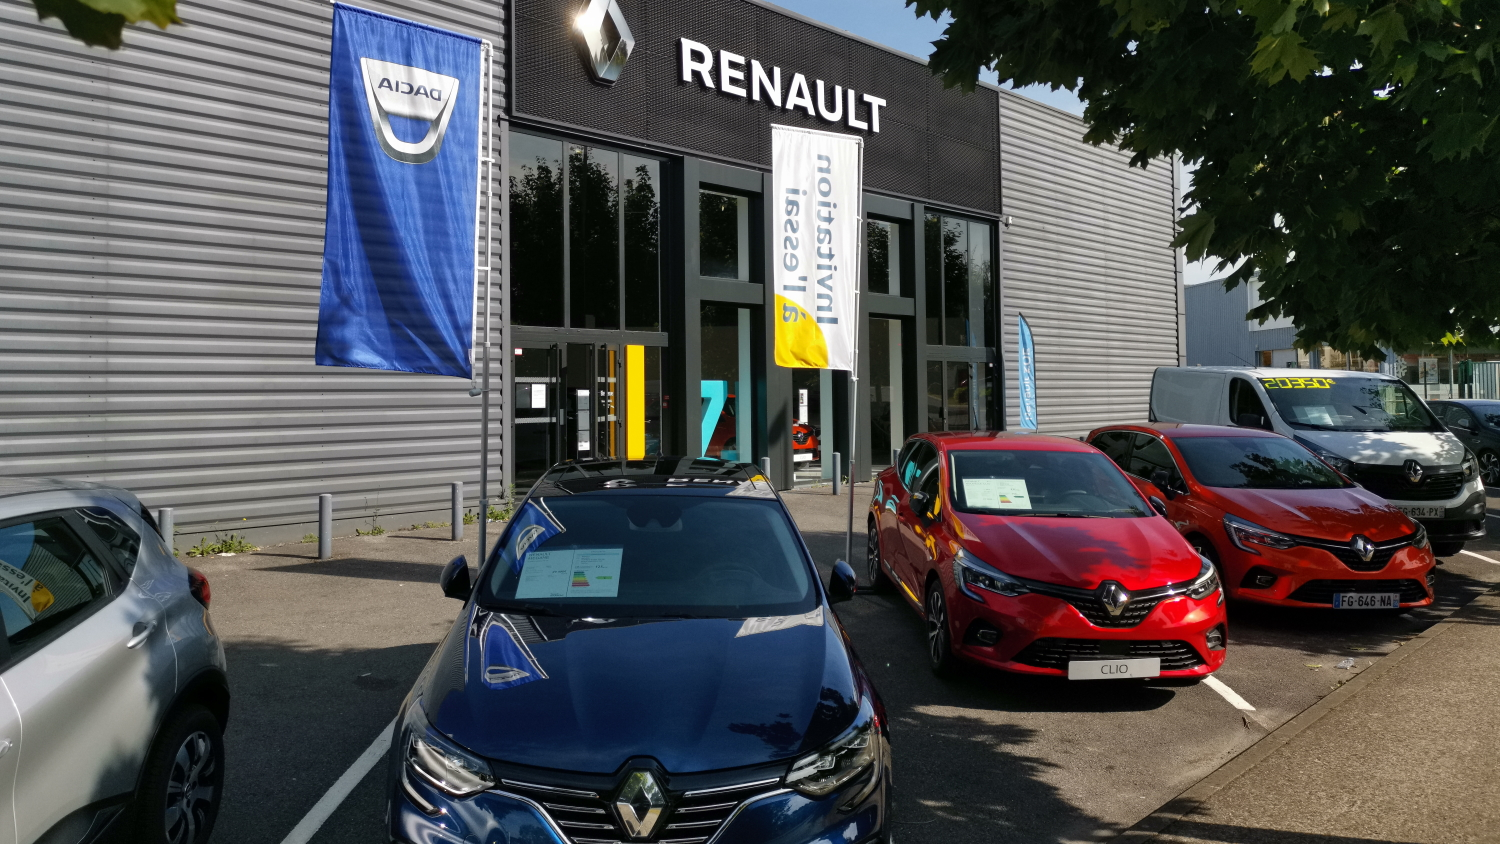 Renault Saint Brice concession Rousseau Automobile